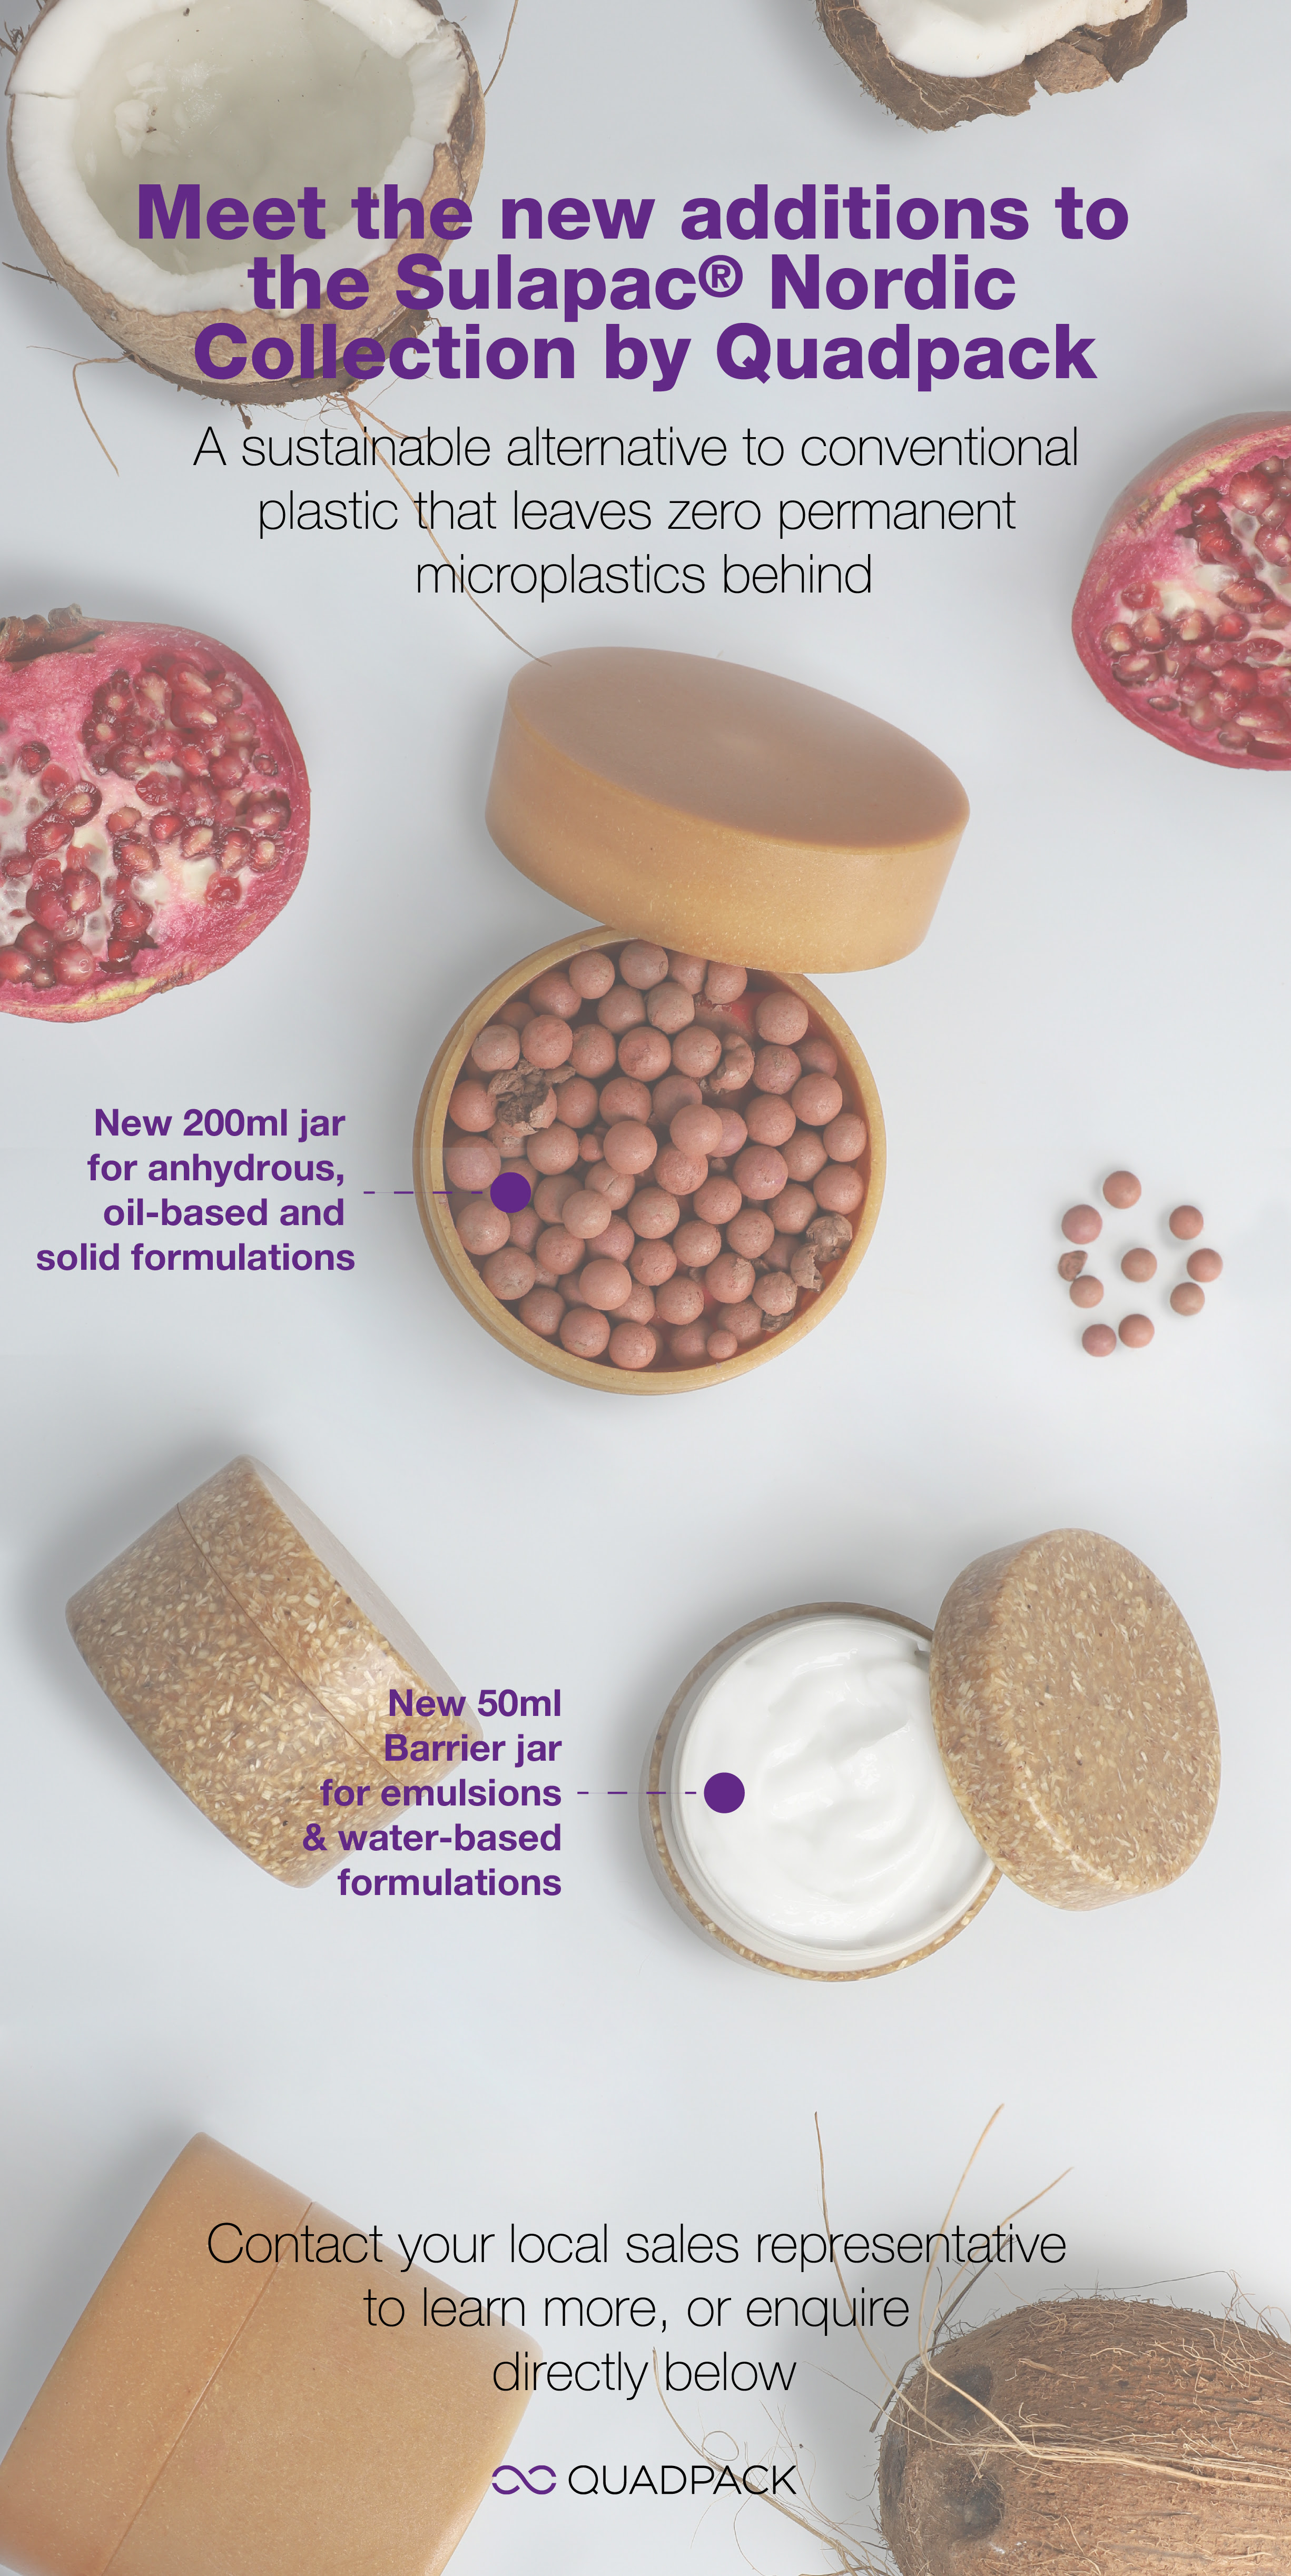 Quadpack unveils its most circular pack yet, a new 50ml jar in Sulapac biocomposite material, with new barrier technology